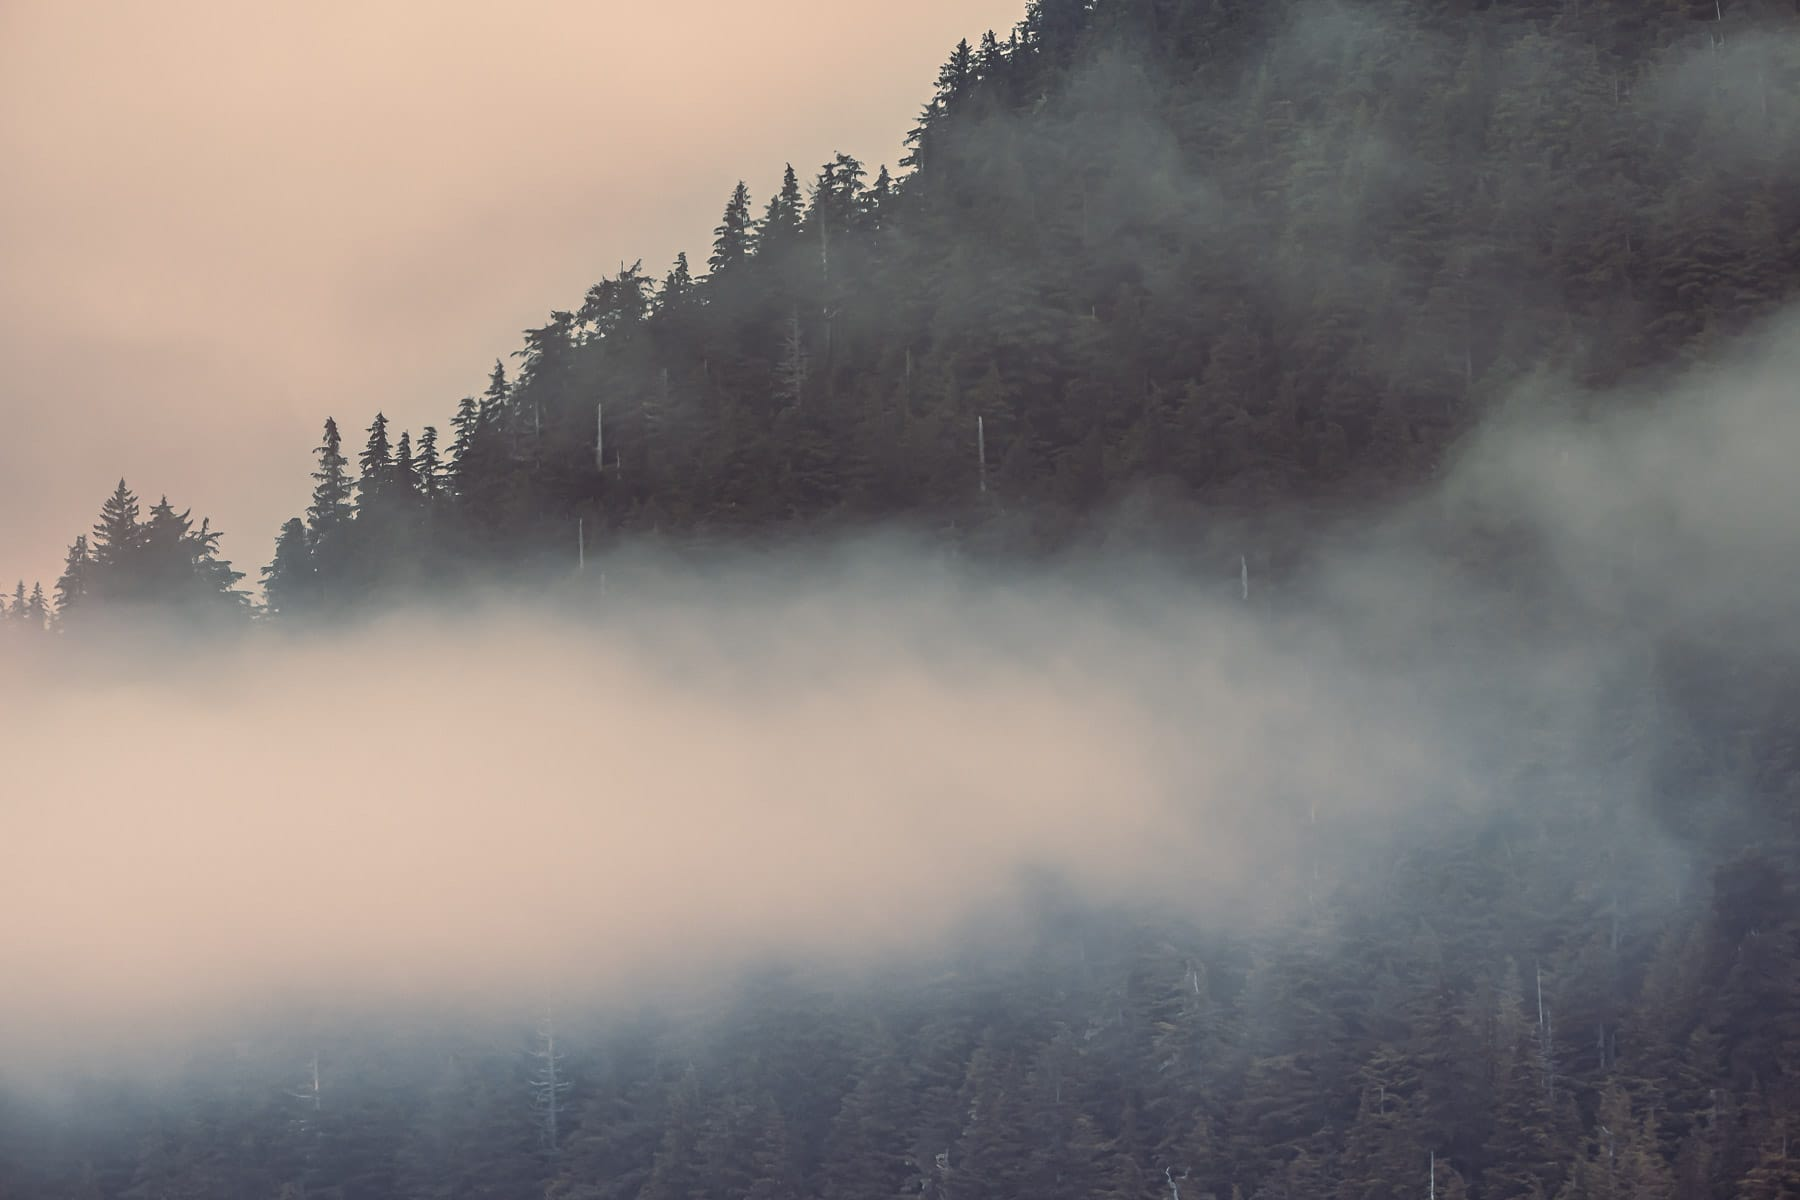 Morning haze and low clouds in the mountains above Ketchikan, Alaska.